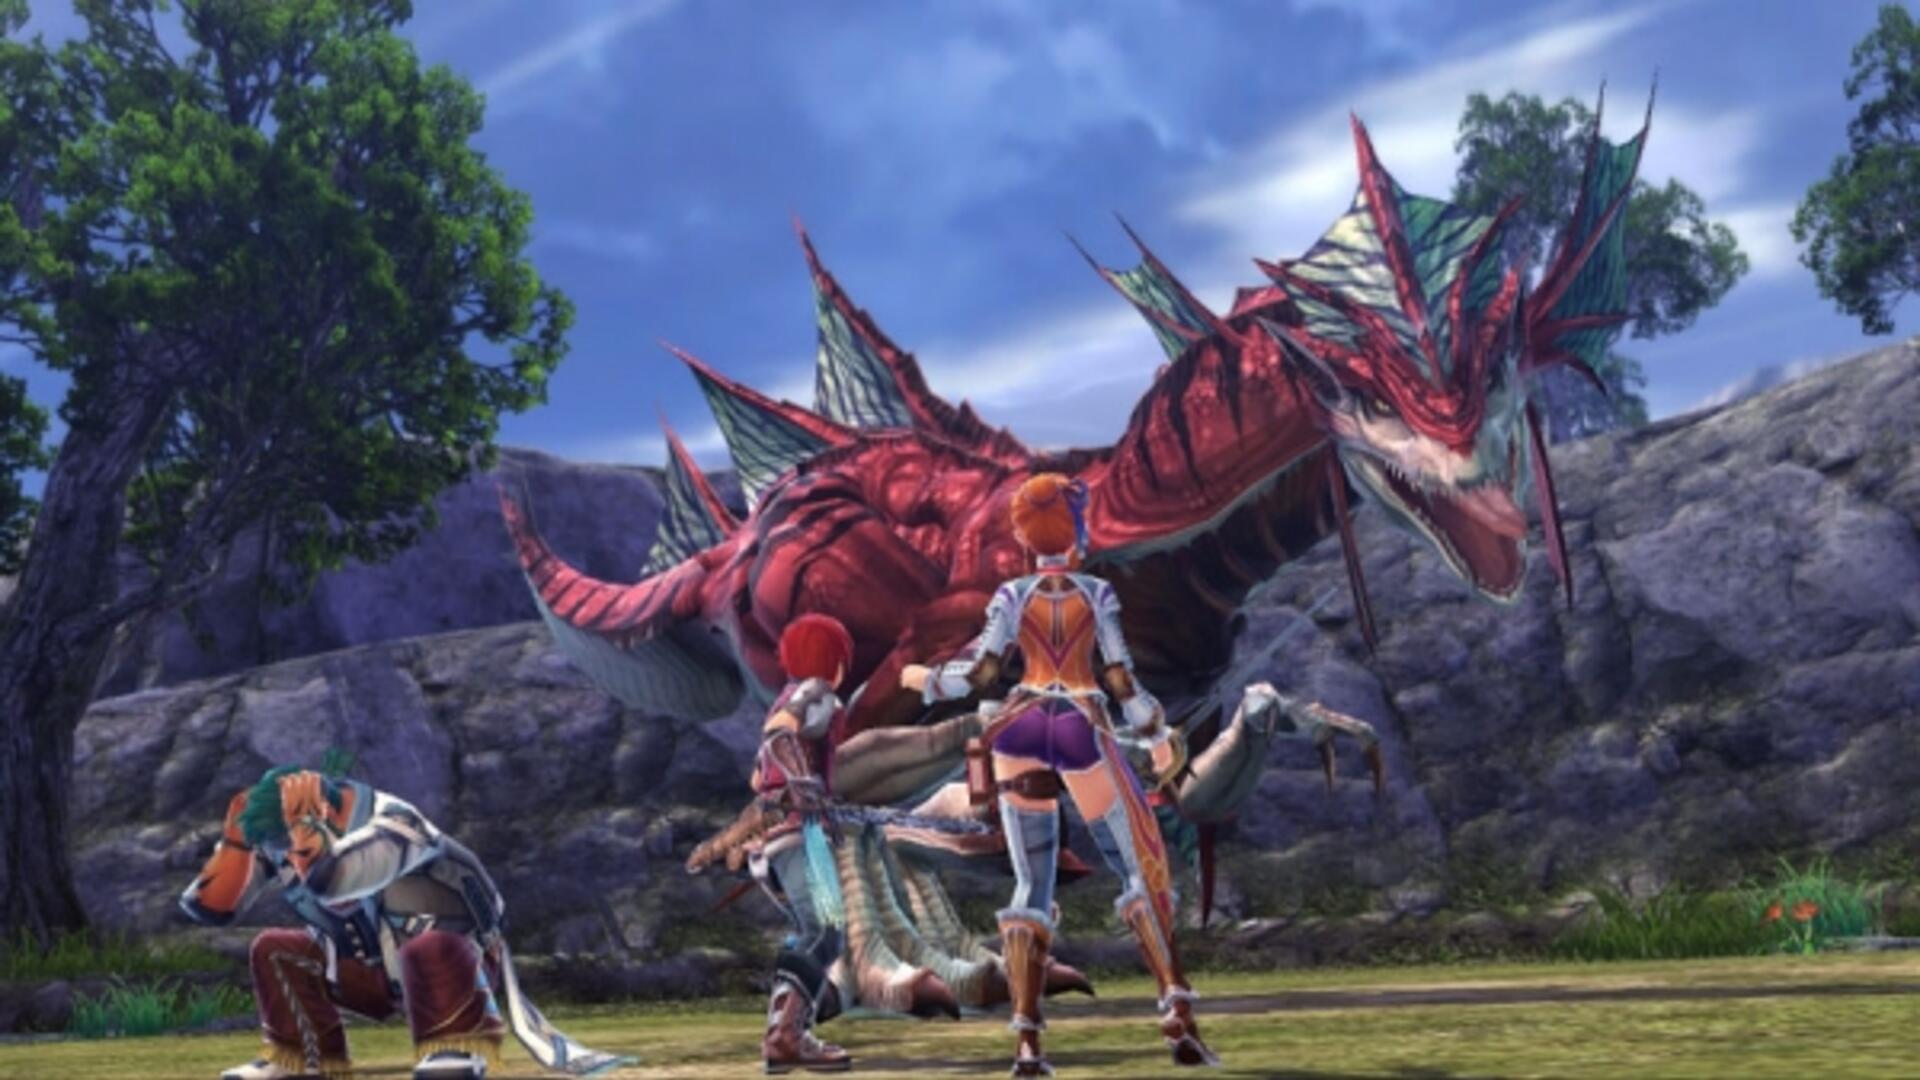 NIS America Will Re-edit Ys VIII: Lacrimosa of Dana's Localization Amid Complaints